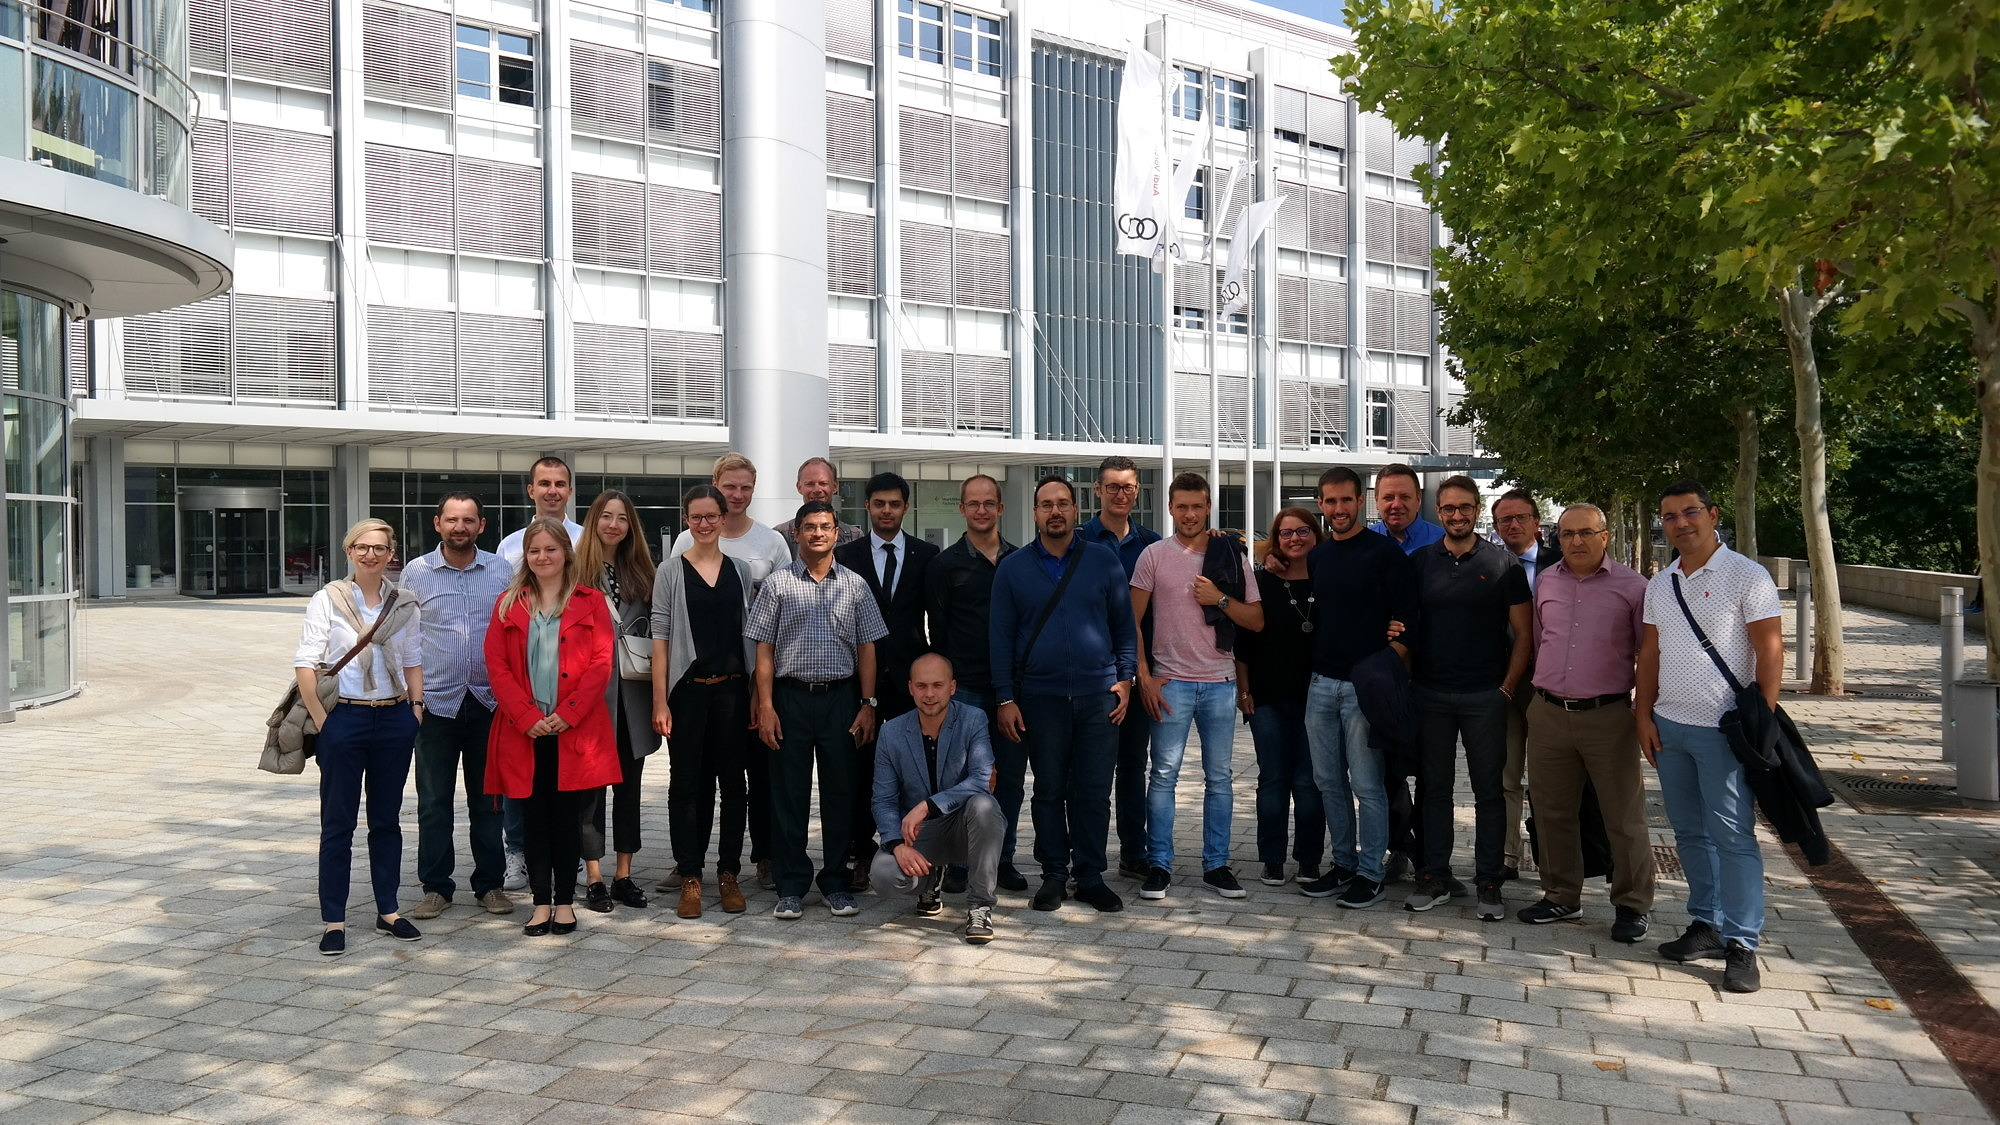 Group photo of 22 researchers from the technical faculties at Friedrich-Alexander-Universität Erlangen-Nürnberg and the Indian Institute of Technology Delhi visiting AUDI in Ingolstadt.